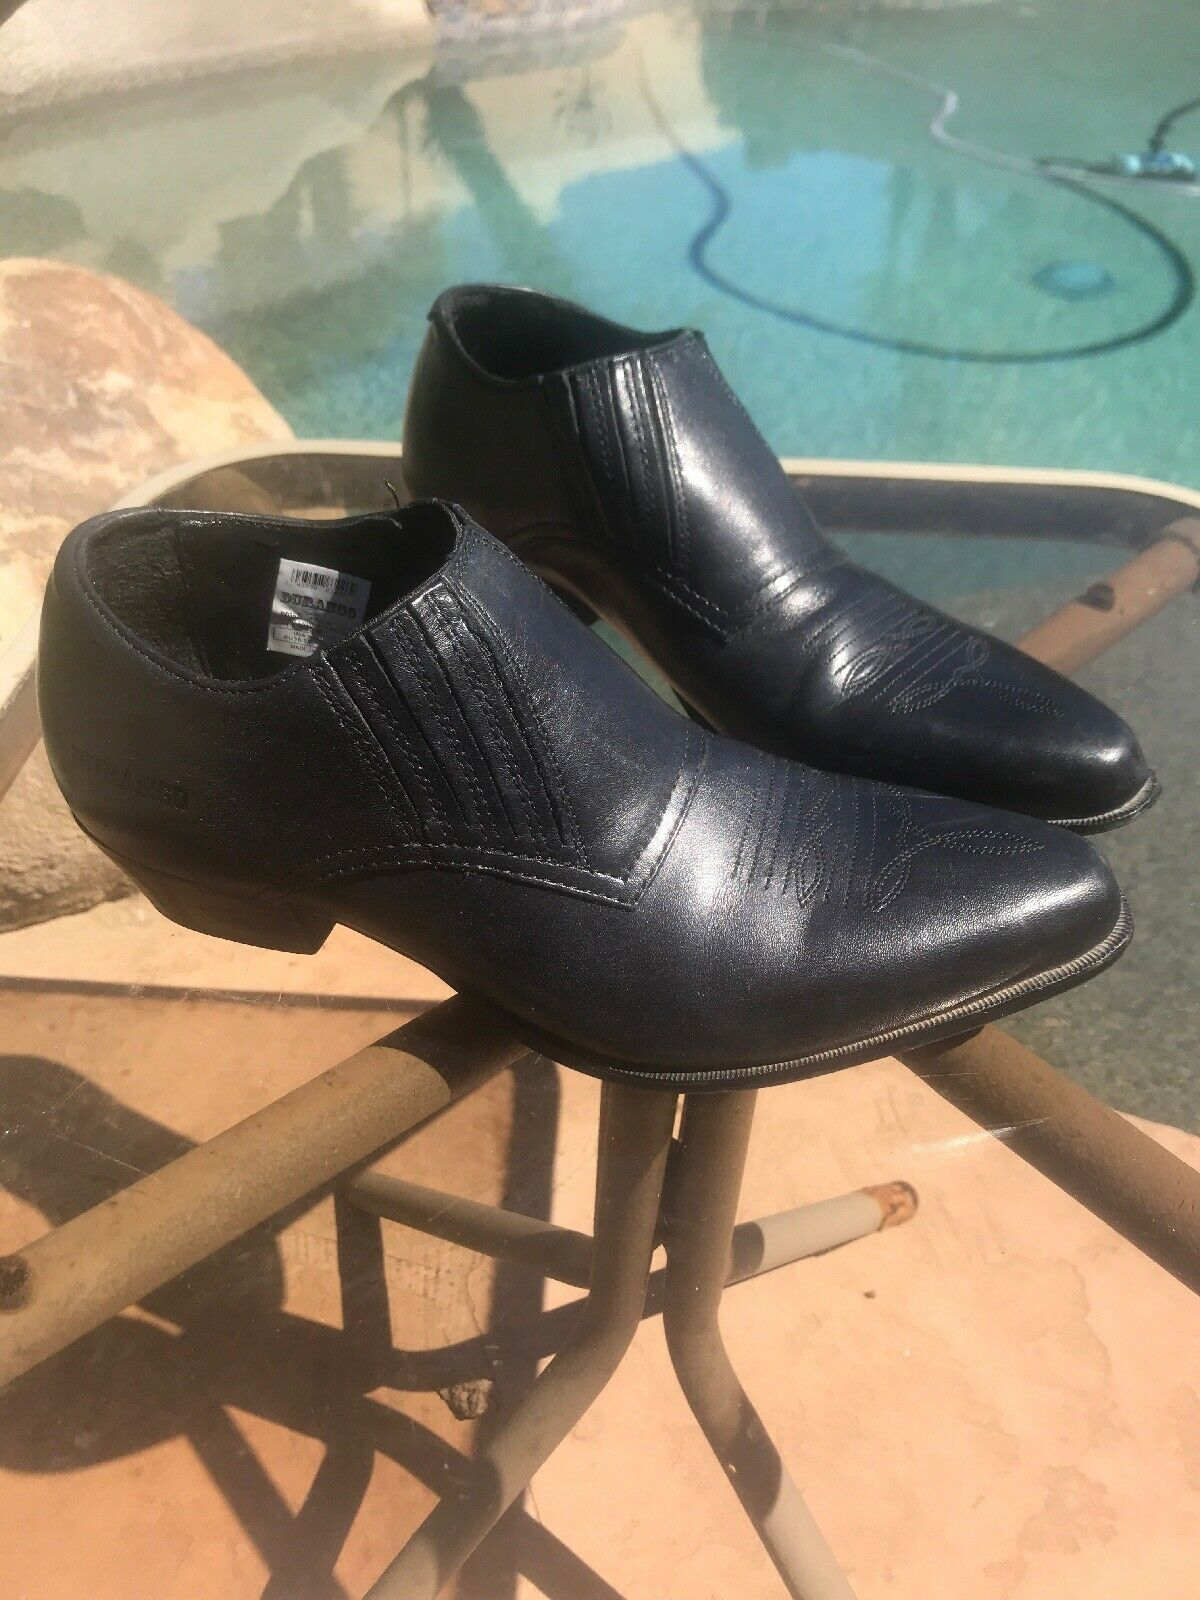 Durango Wos shoes Boots Low Ankle RD3520 US US US 7 M Black Leather Heels Bixa4 5ca3ce